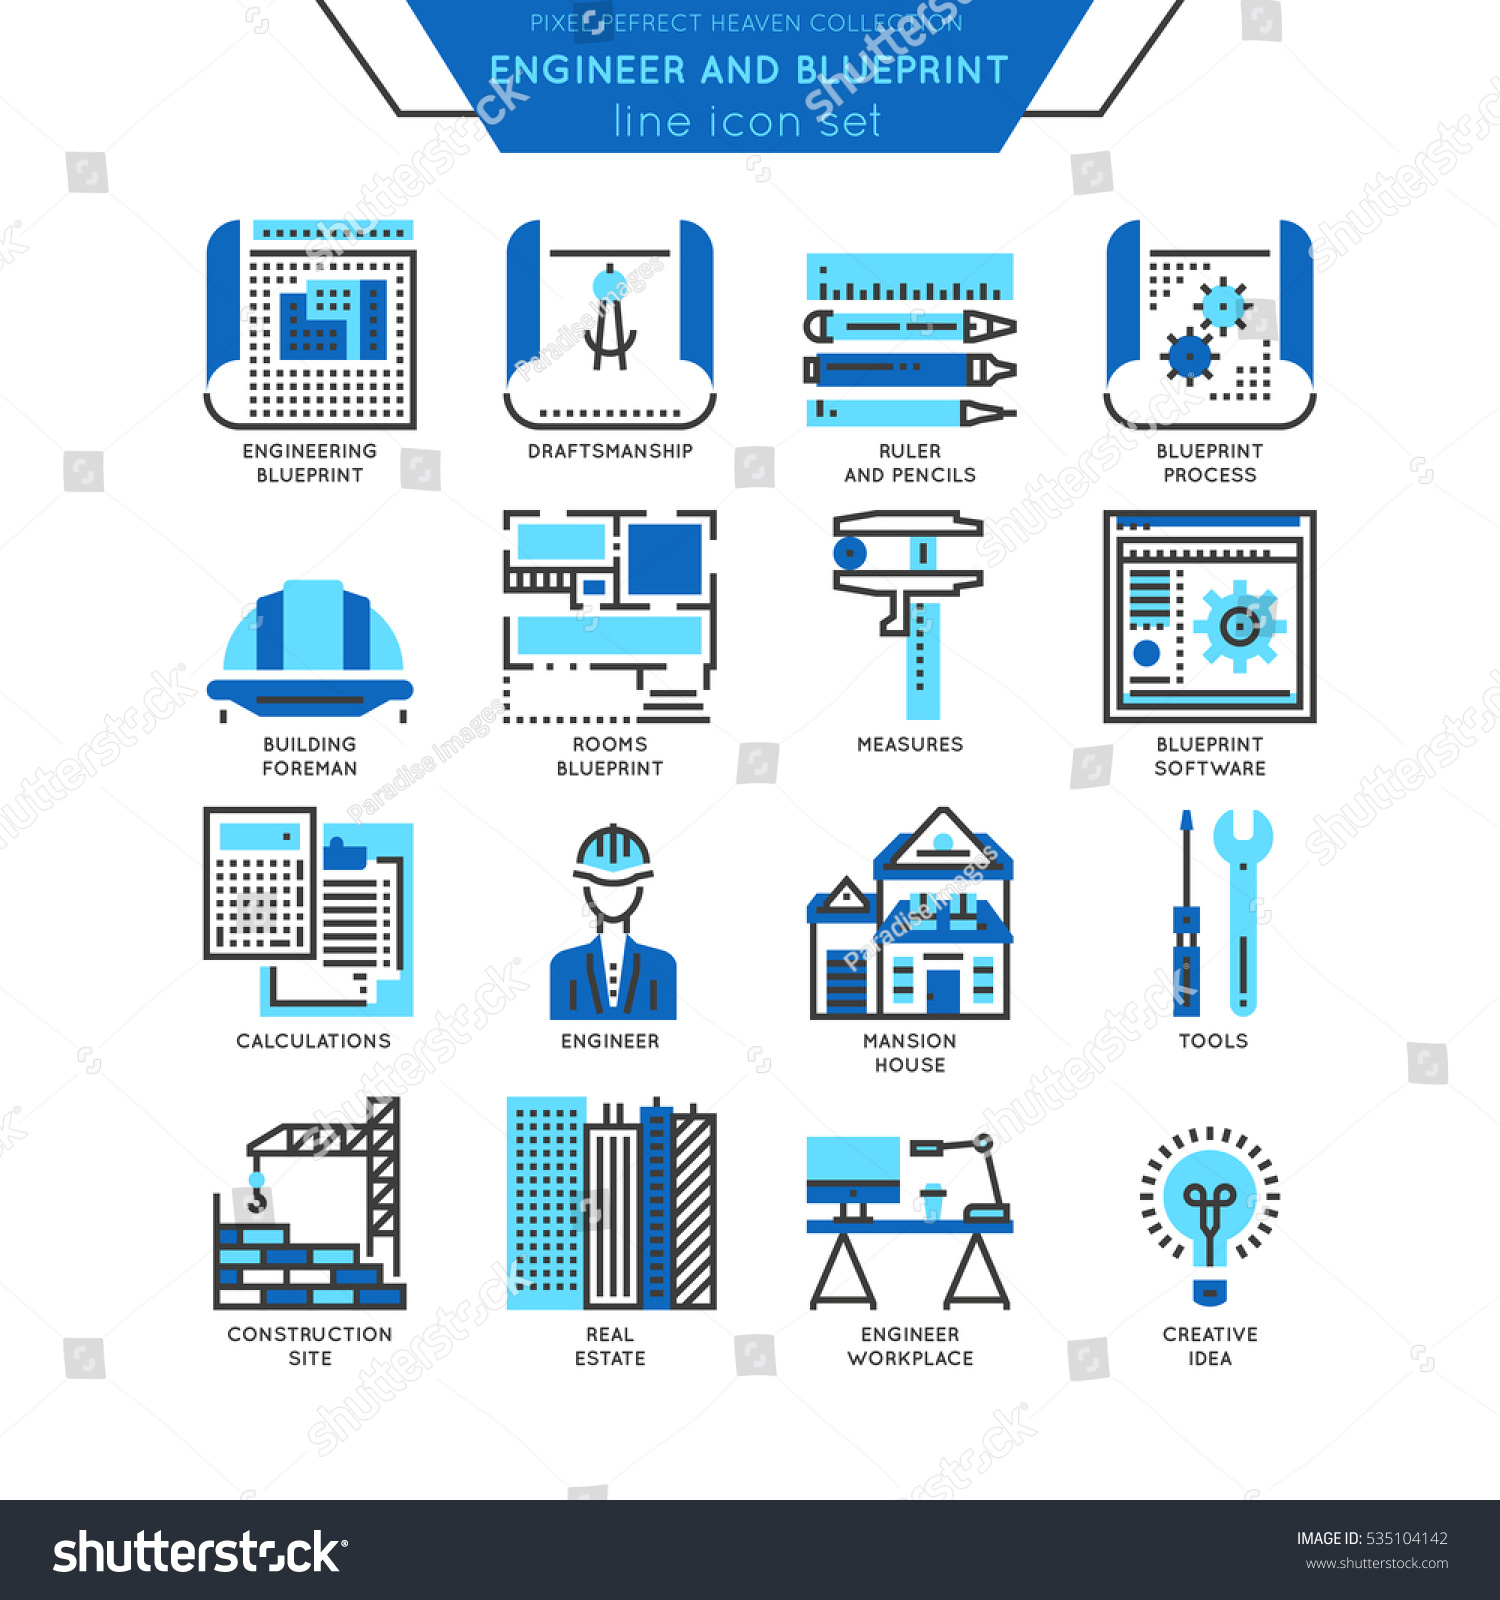 Blueprint And Engineer Line Icon Color Set  Draftmanship  Tools For  Engineering  Software And. Blueprint Engineer Line Icon Color Set Stock Vector 535104142